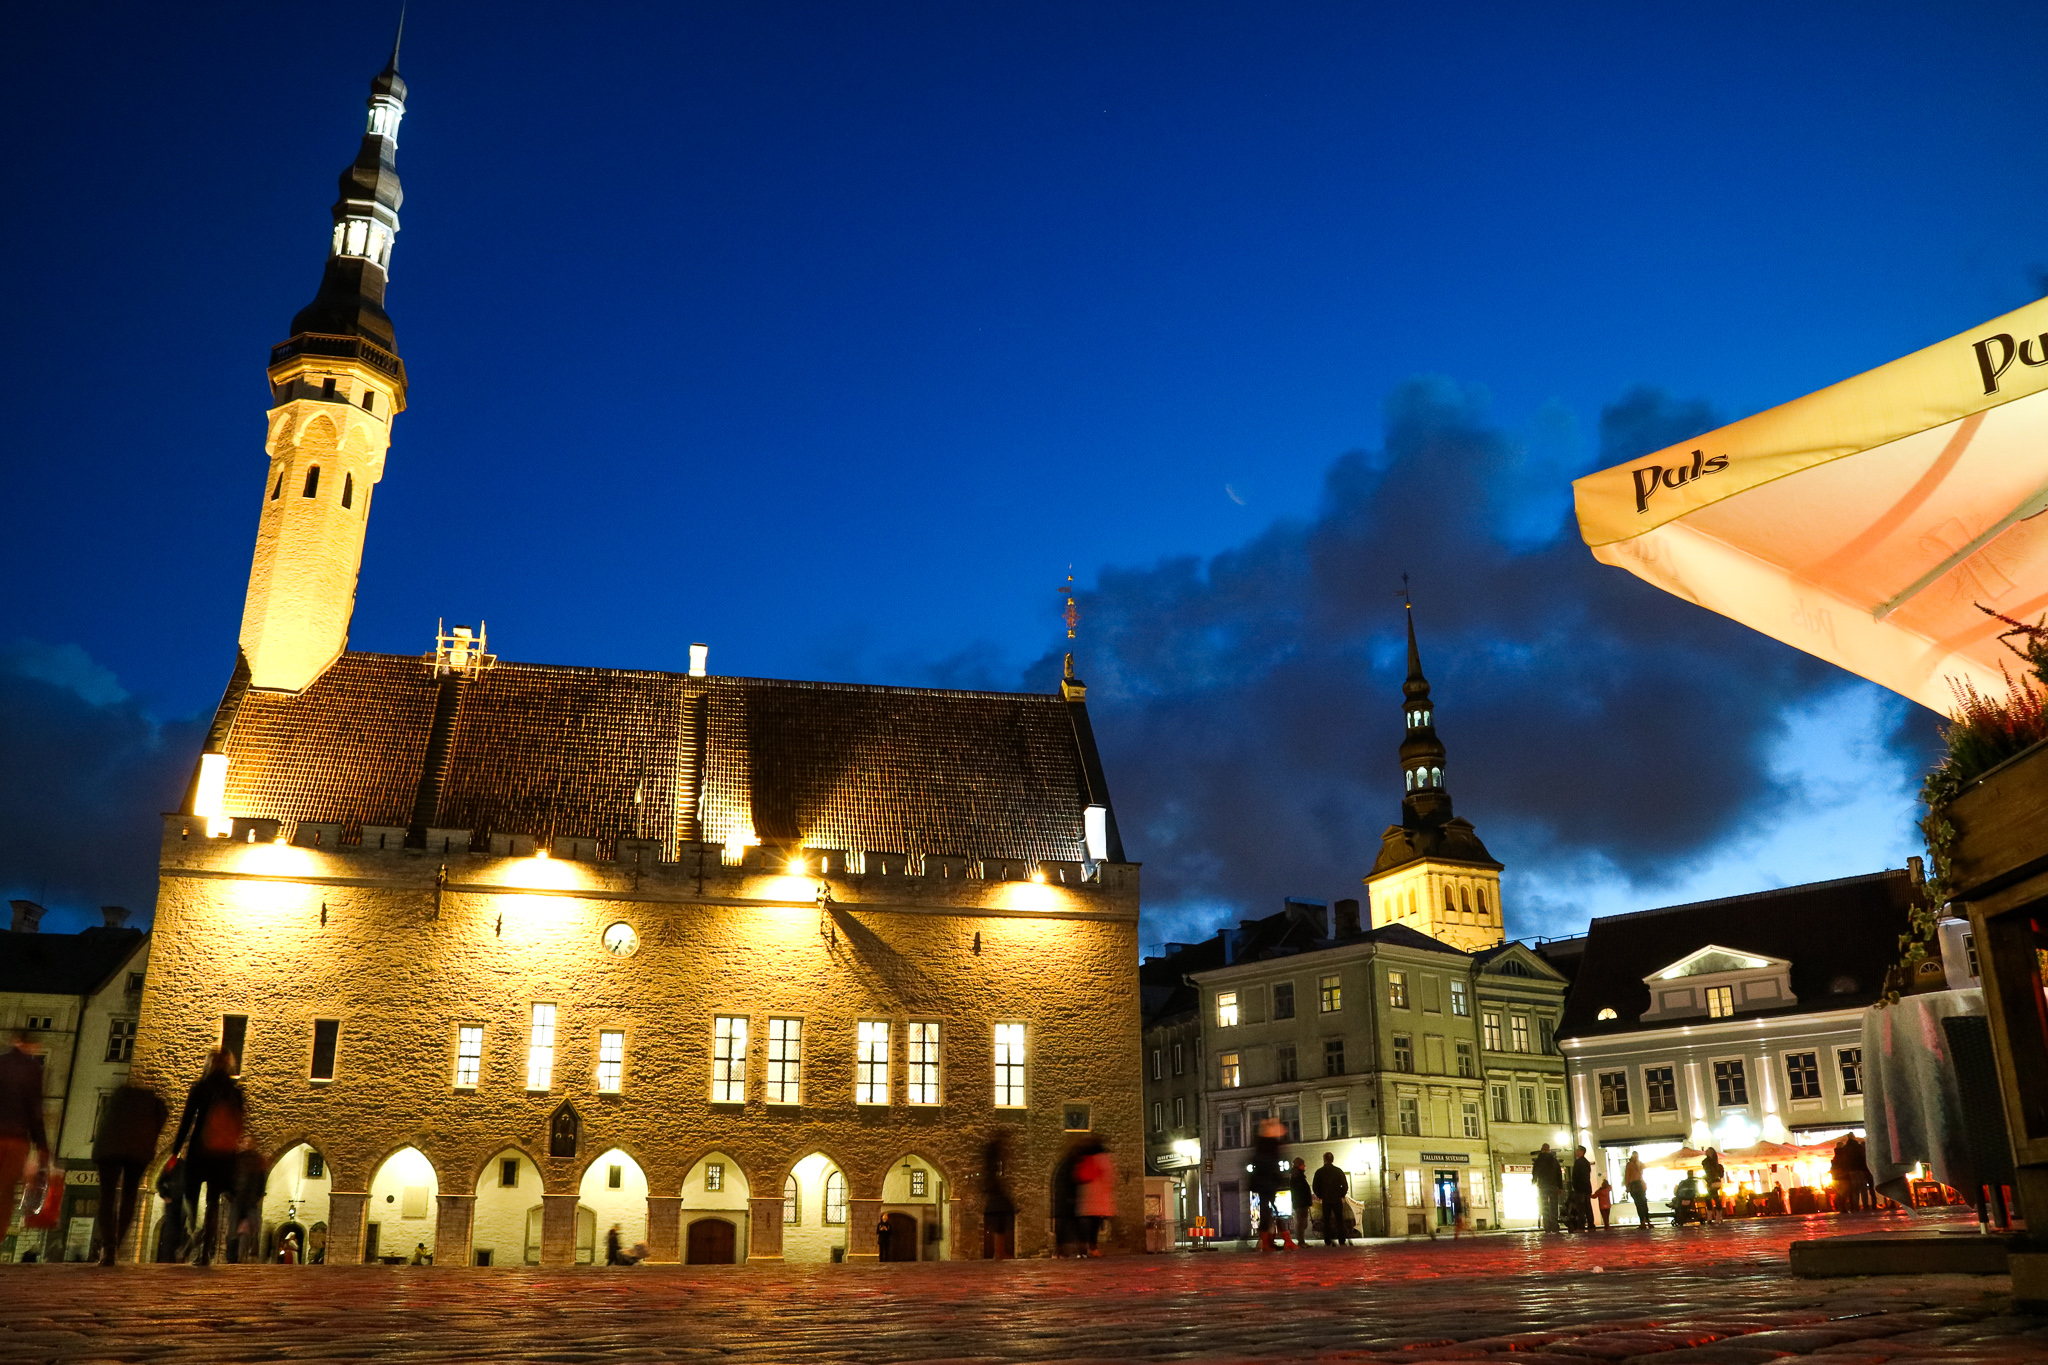 tallinn old town center at night.jpg